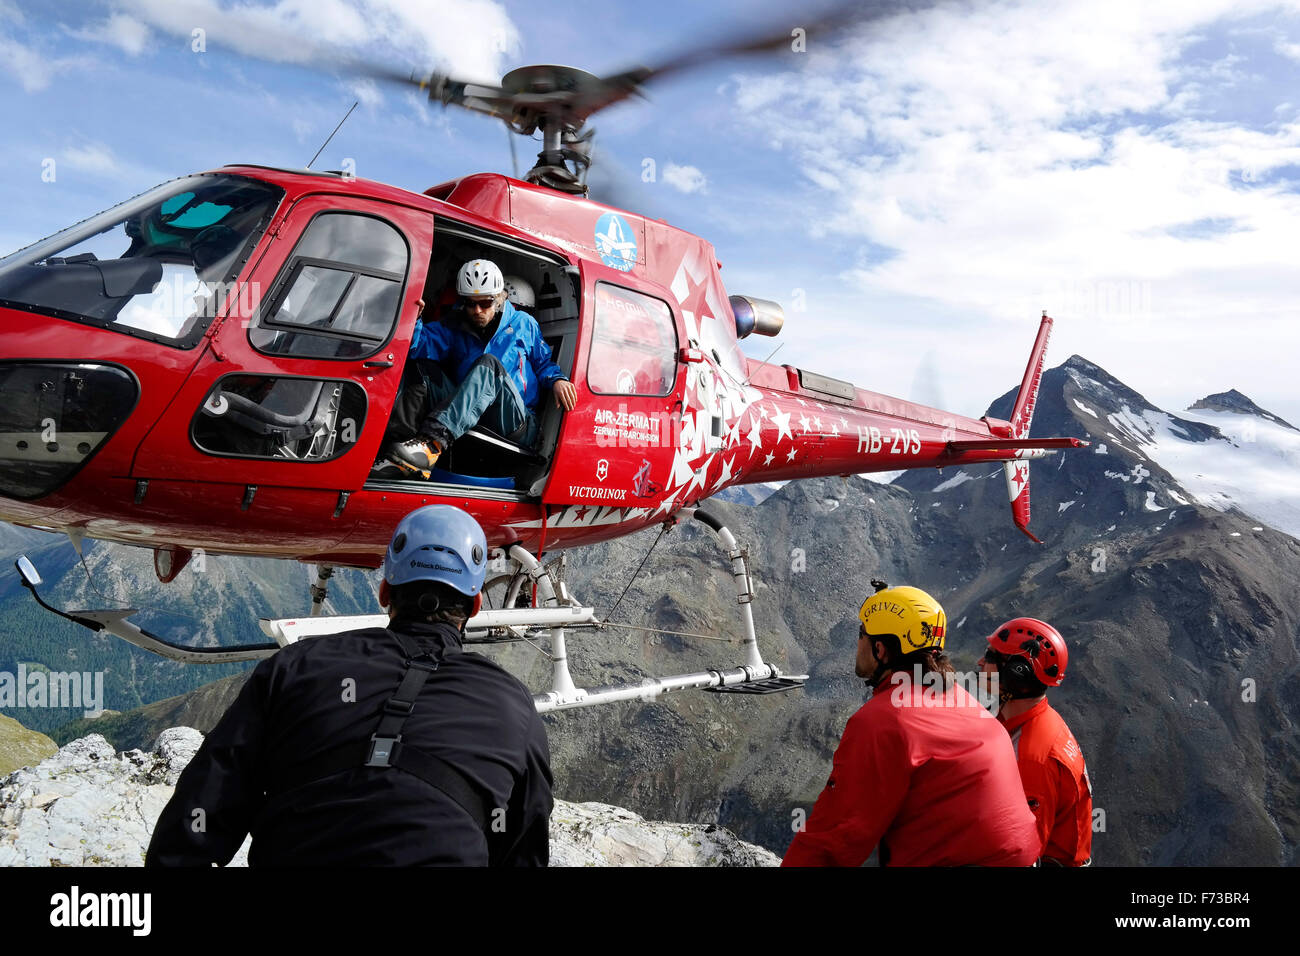 Mountain rescuers are landing with a Air Zermatt helicopter in the Swiss Alps. As the rotor blades are very close - Stock Image